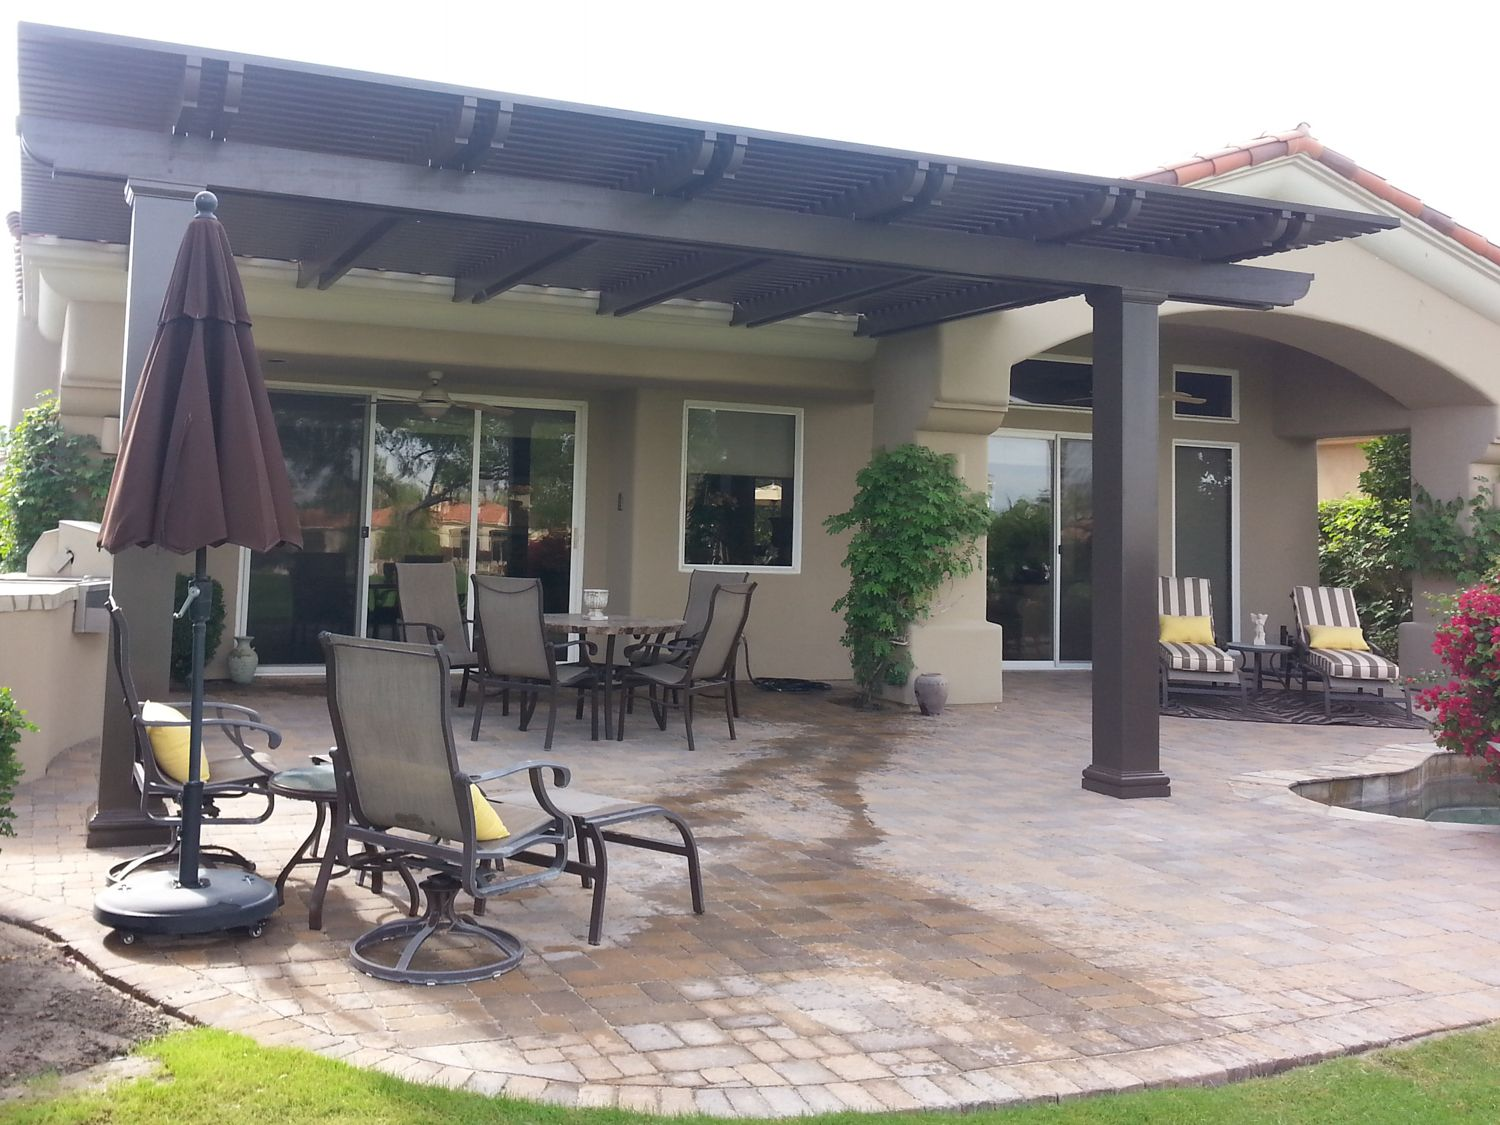 Just The Visible Section Is A Great Size For A Patio Cover